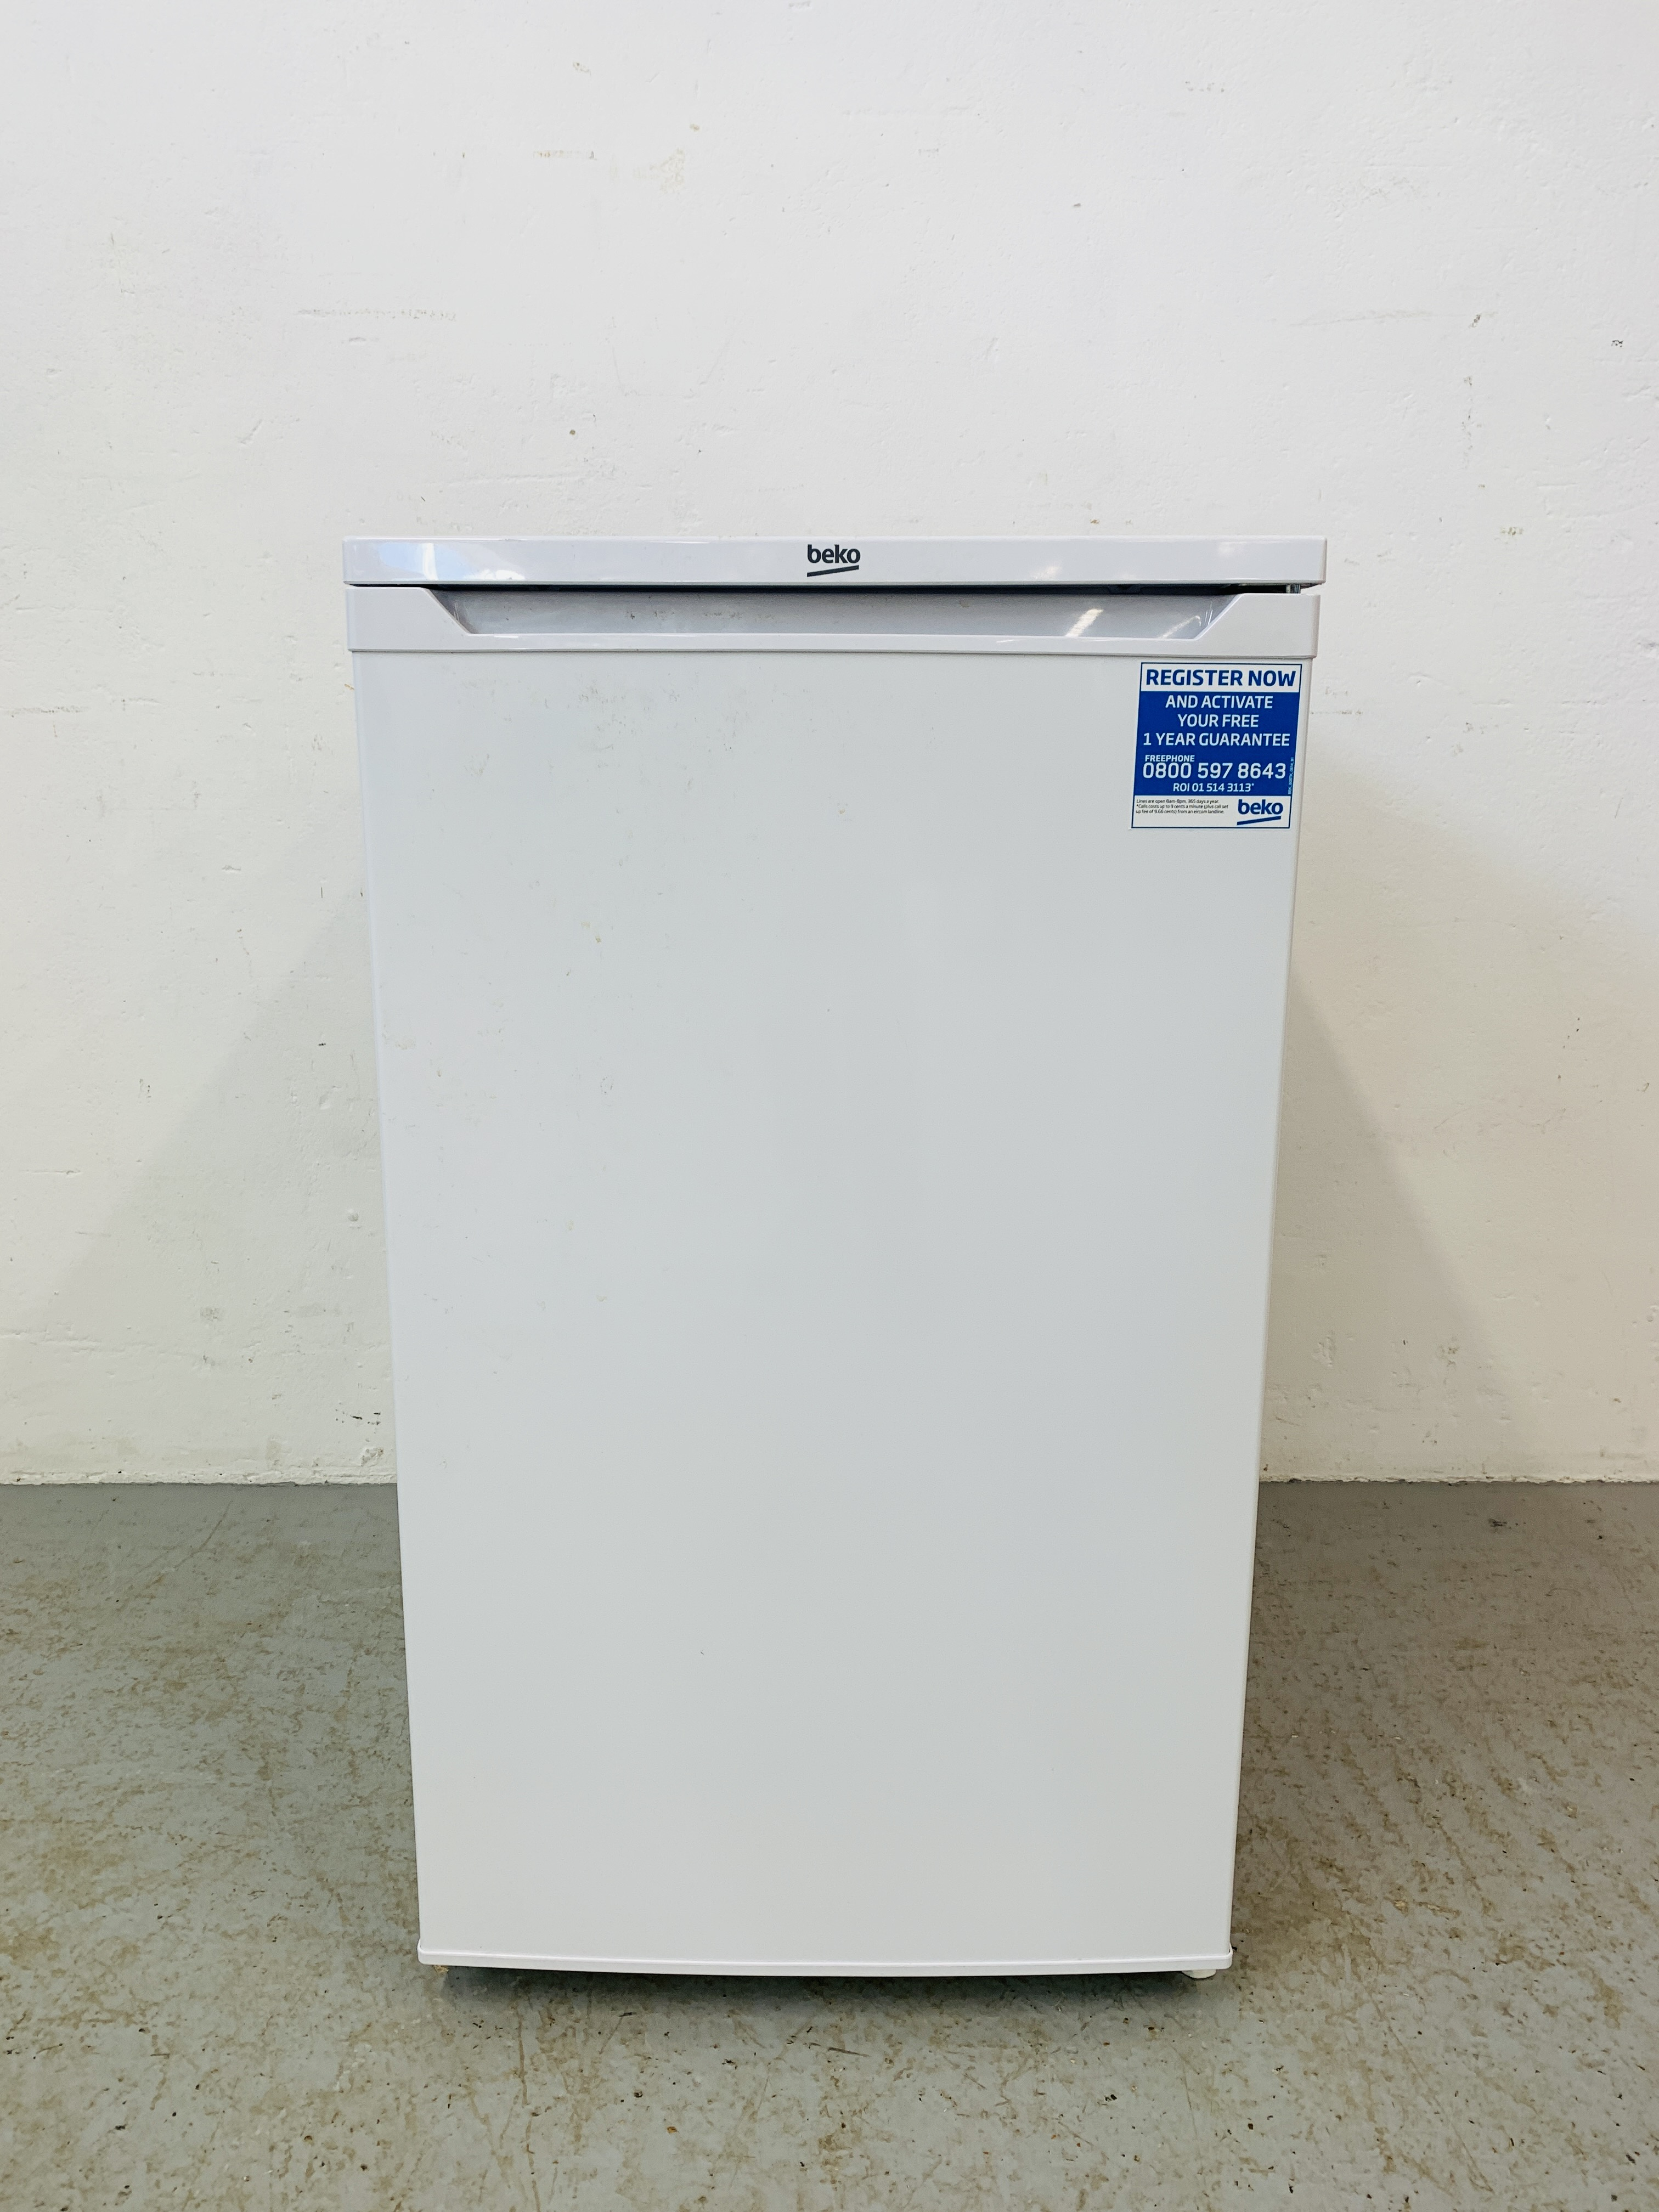 A BEKO UNDERCOUNTER FREEZER - SOLD AS SEEN - Image 3 of 6